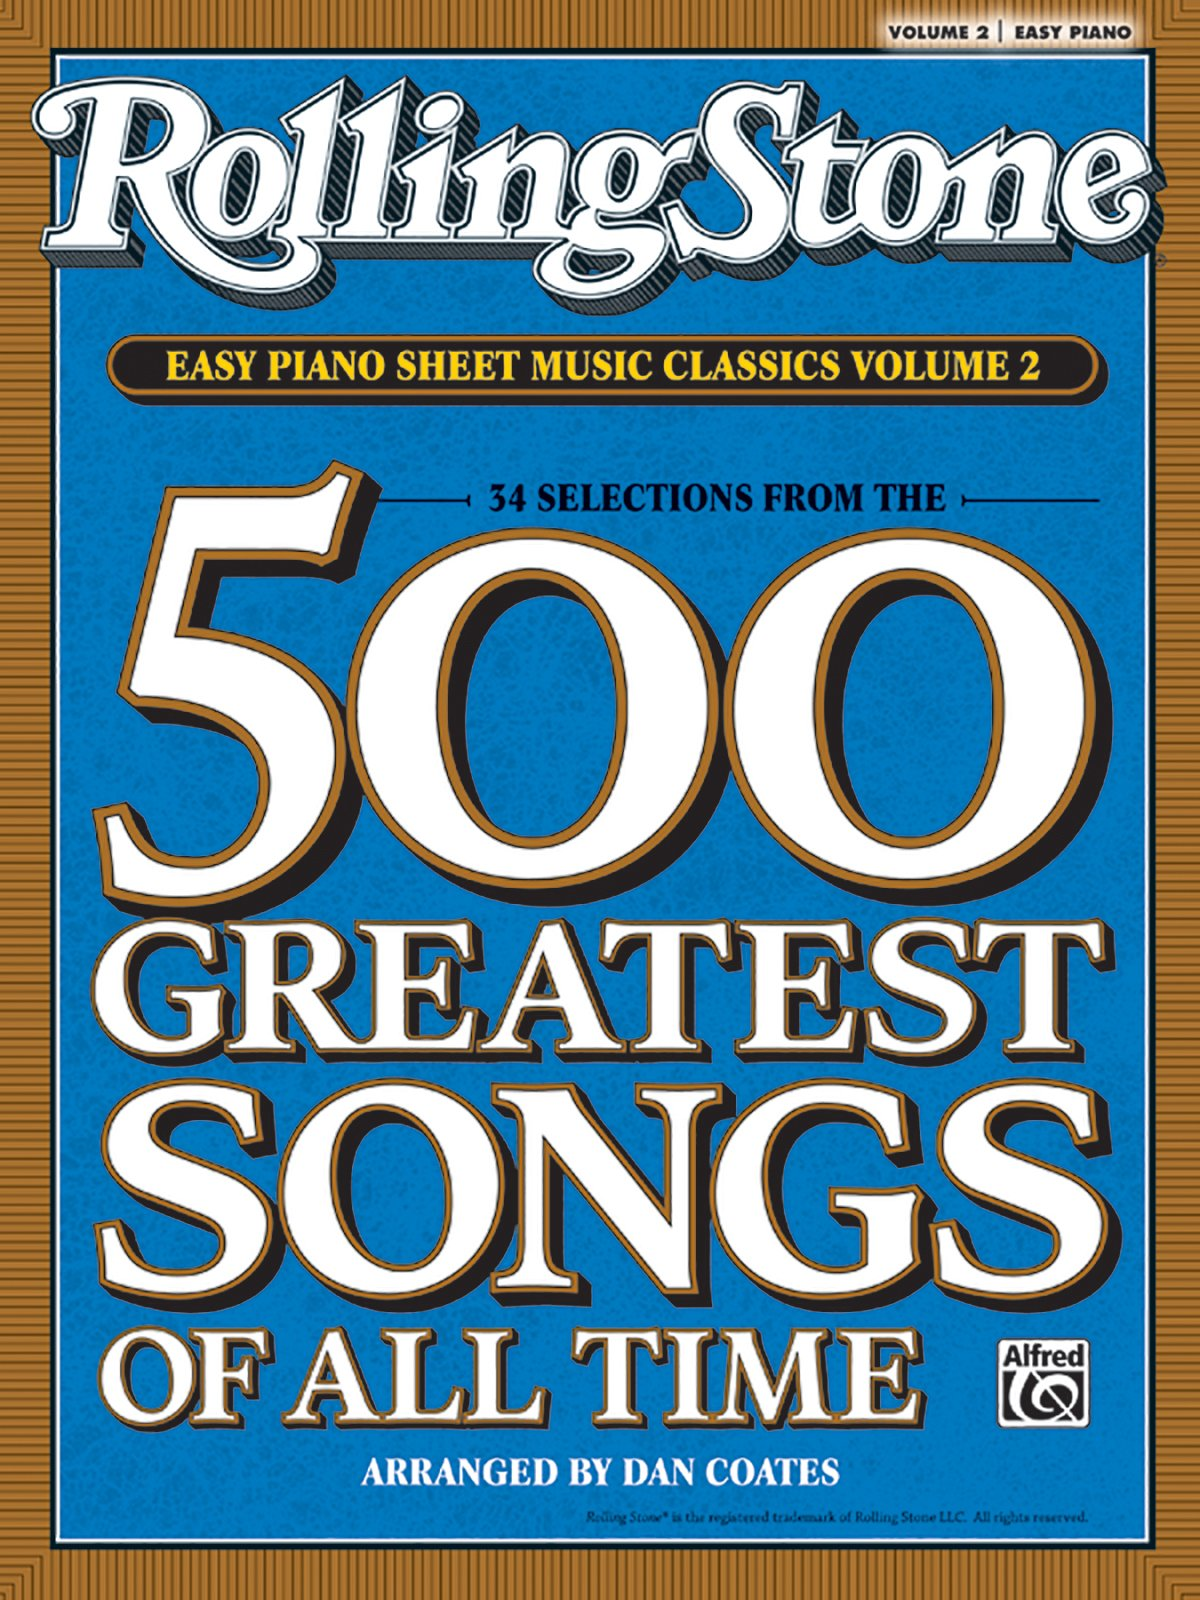 Rolling stone easy piano sheet music classics vol 2 34 selections rolling stone easy piano sheet music classics vol 2 34 selections from the 500 greatest songs of all time irolling stoneir easy piano sheet music fandeluxe Image collections